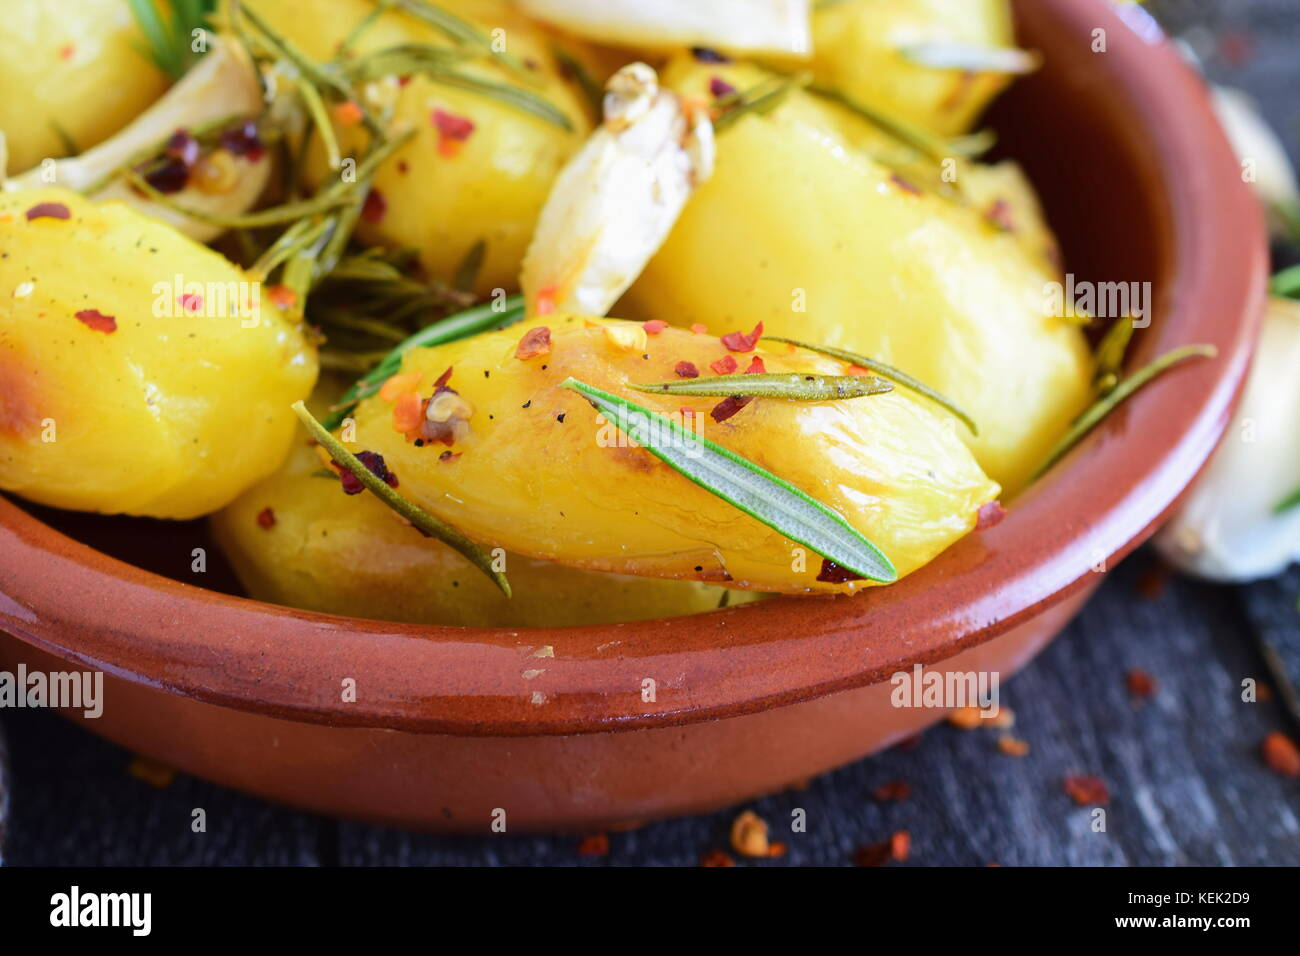 Oven cooked potato with rosemary, garlic, olive oil and mix of spices in a traditional ceramic bowl. Mediterranean Stock Photo